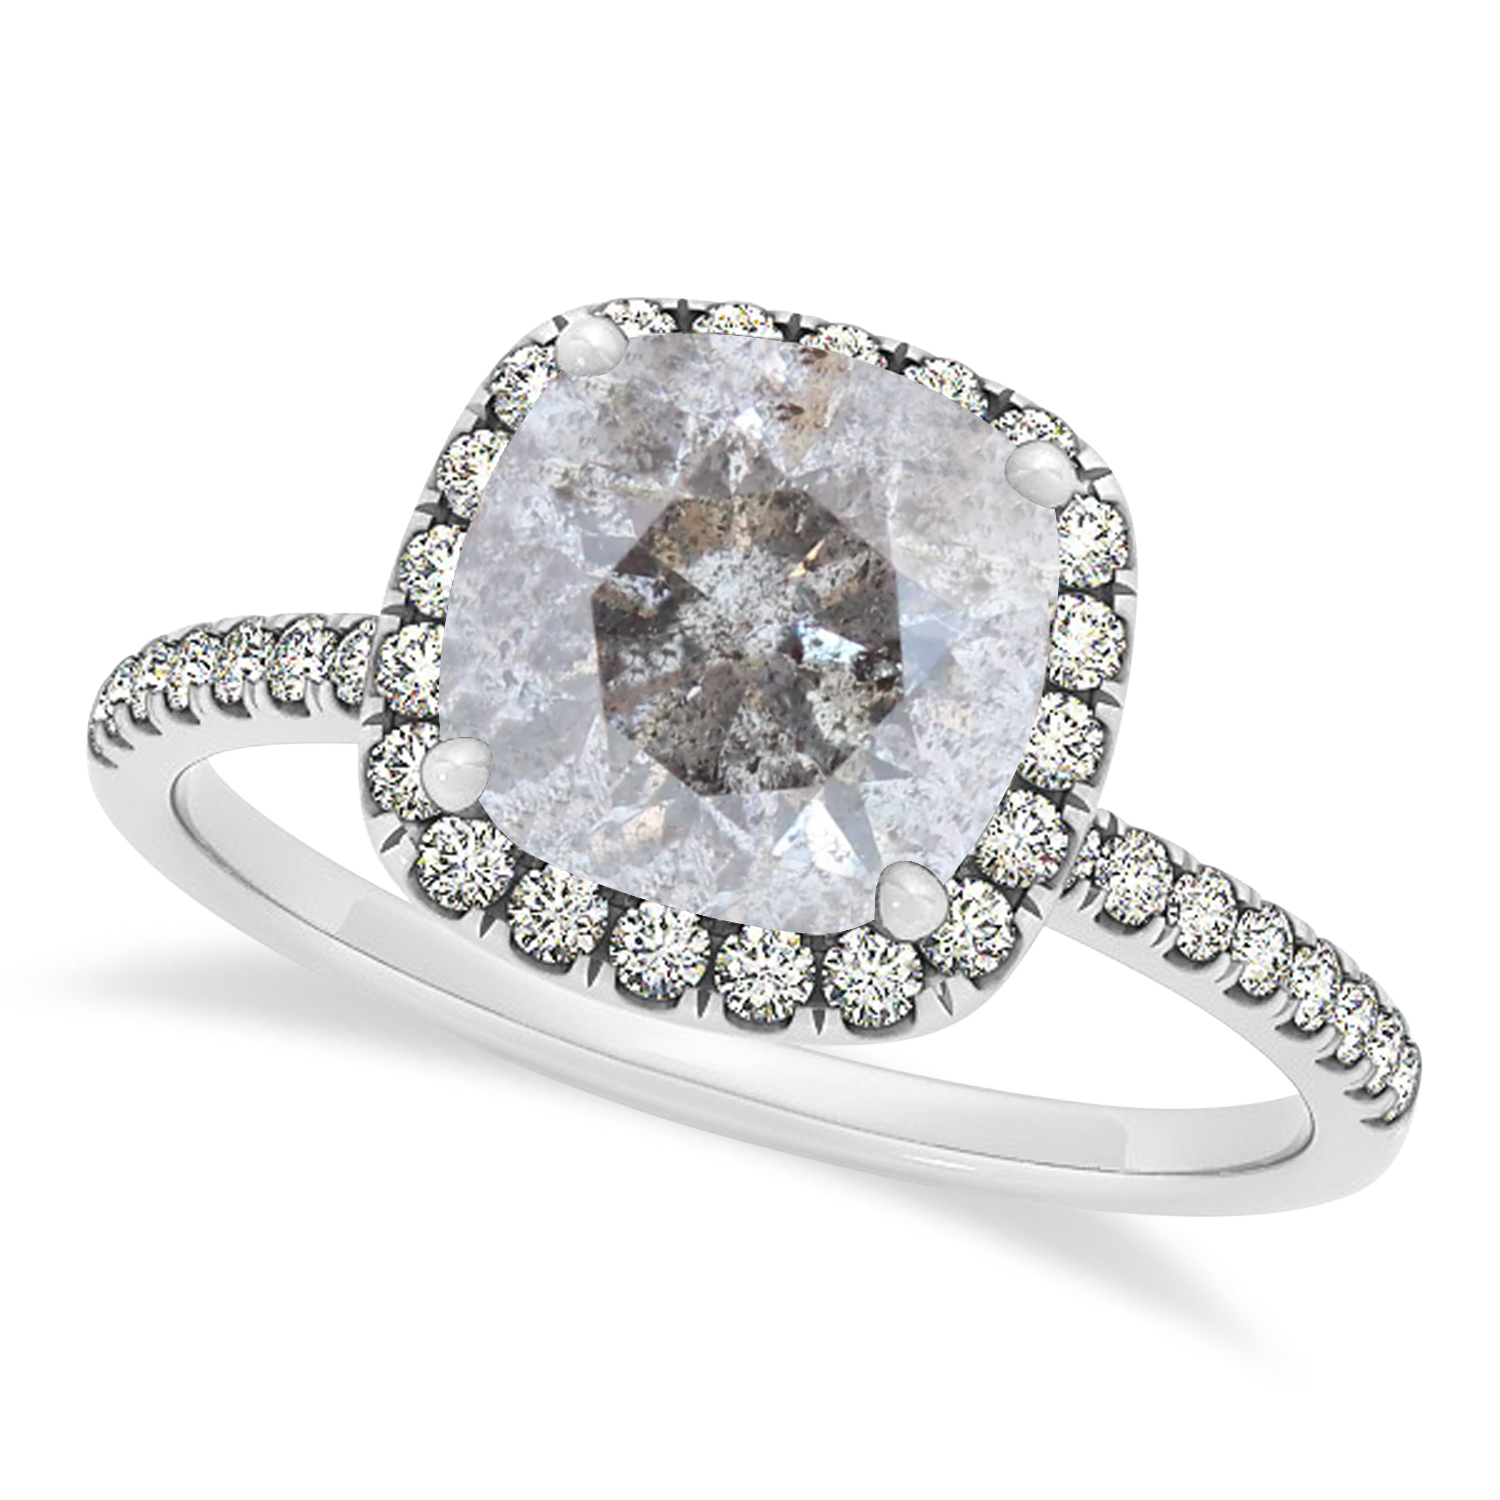 Cushion Salt & Pepper Diamond Halo Engagement Ring French Pave 14k W. Gold 2.00ct